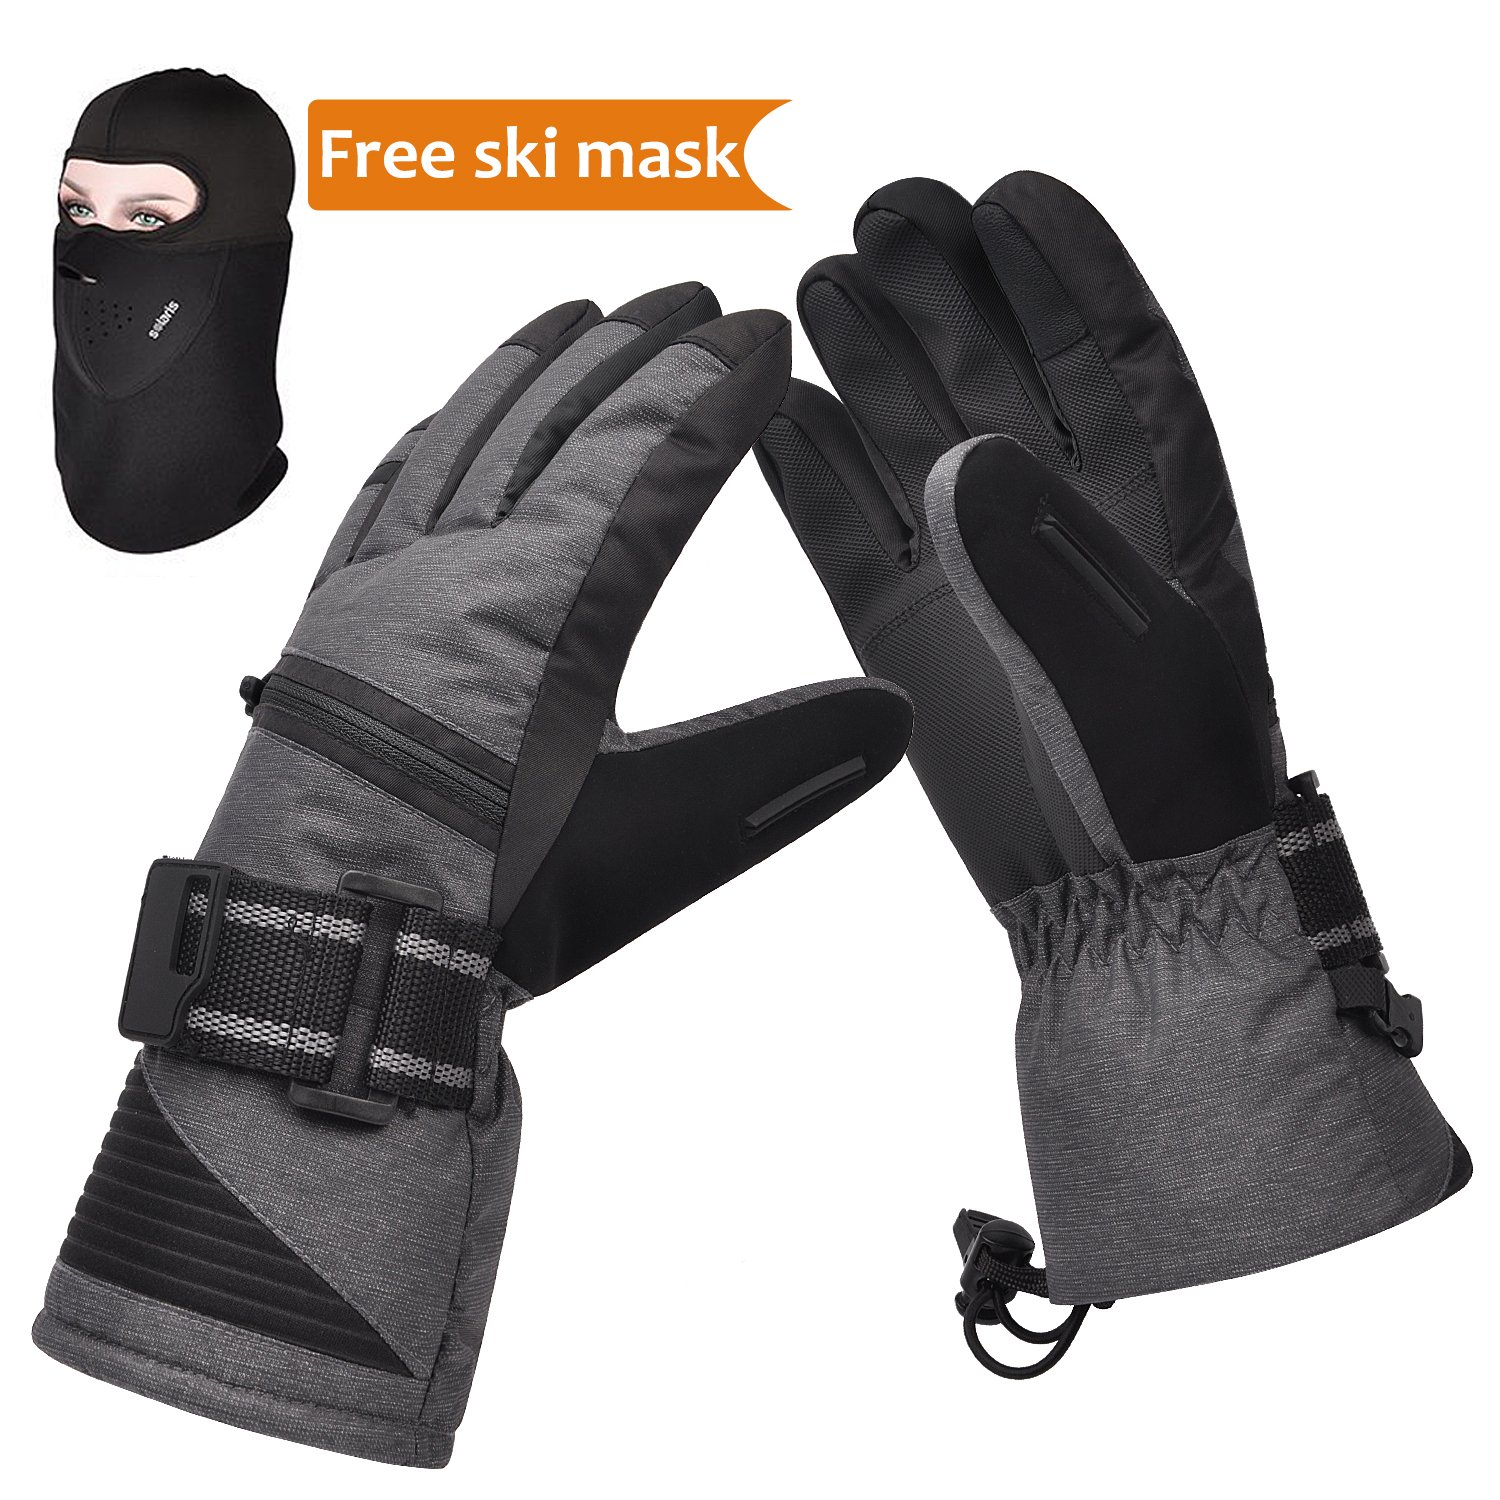 6f608d9a298f1 WARM AND COMFORTABLE  40g 3M Thinsulate Insulation lining filled in the ski  gloves. It is thick enough to keep hands warmth in cold chilly weather even  if ...